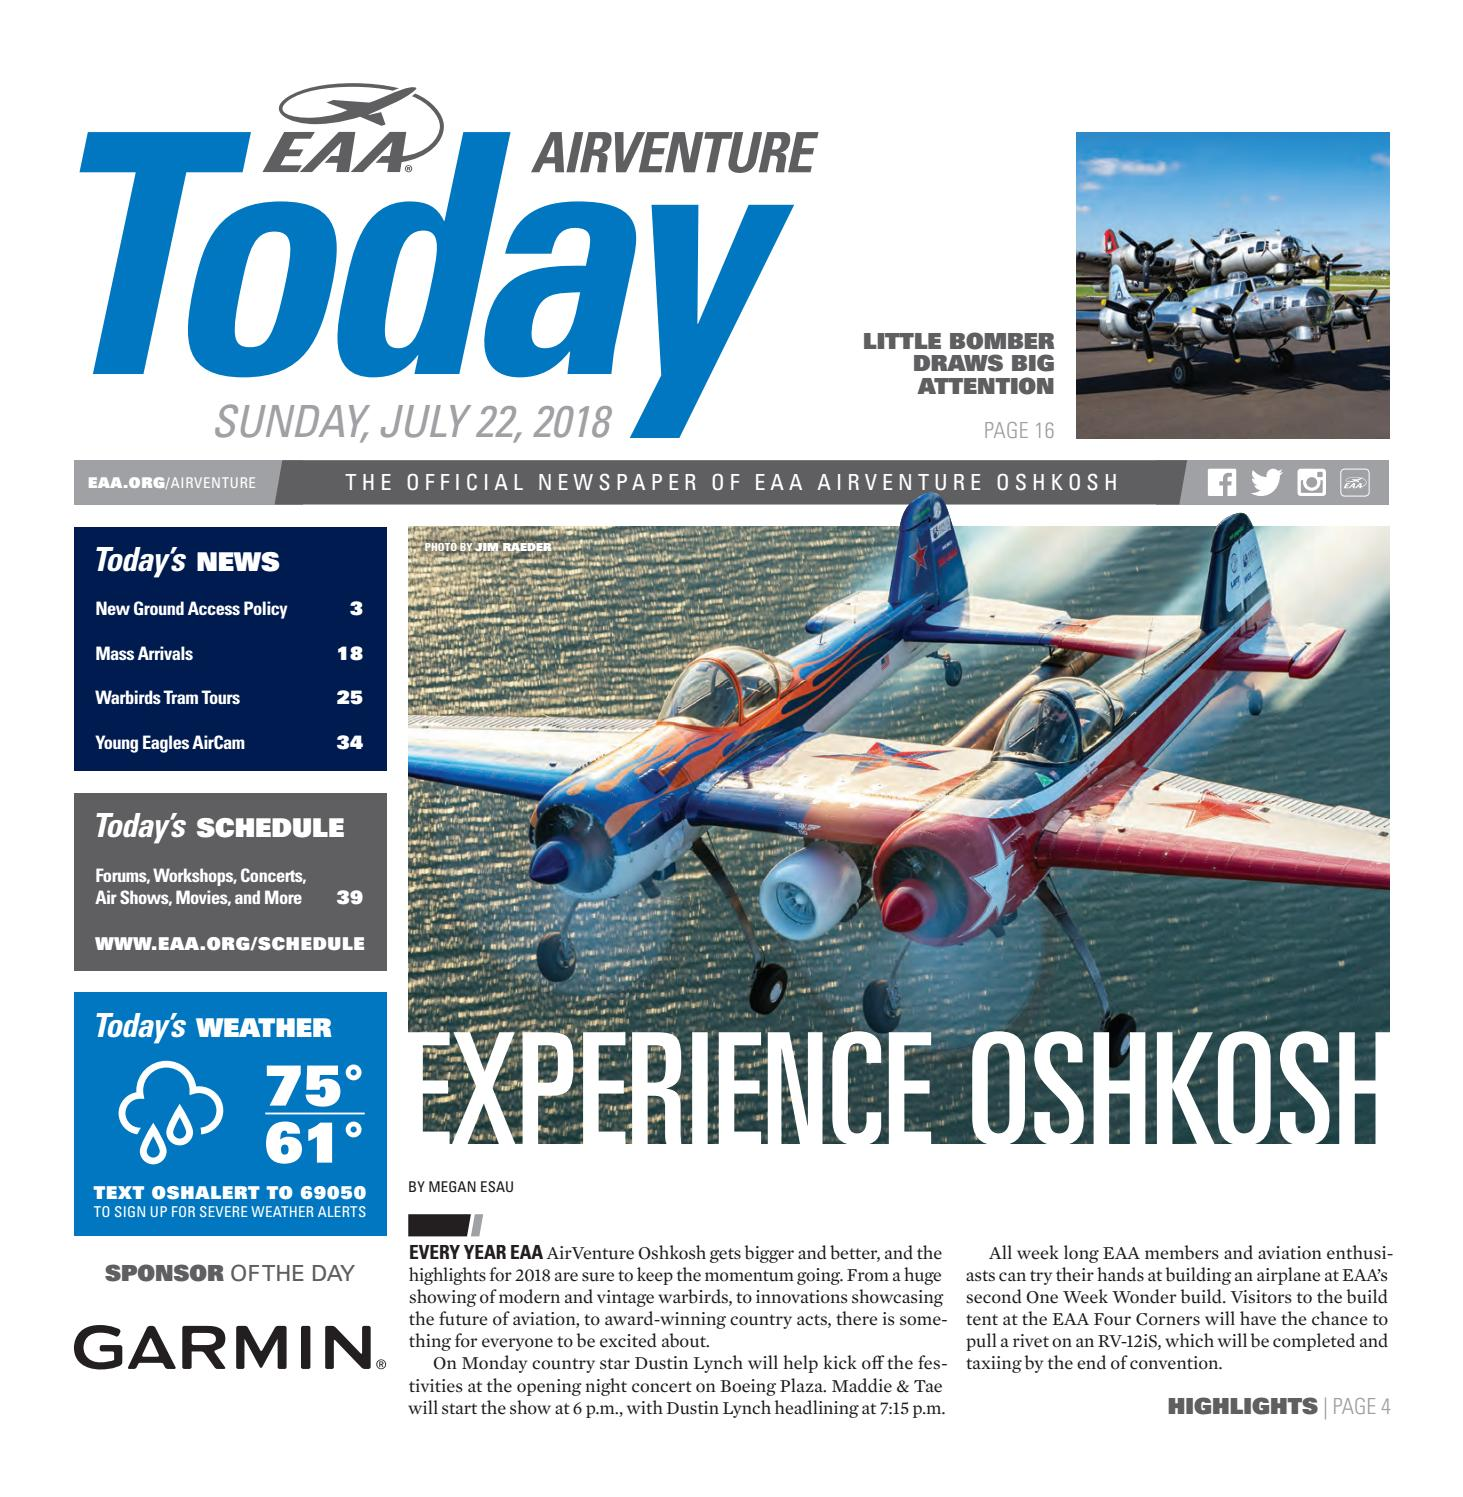 EAA AirVenture Today - Sunday, July 22, 2018 by EAA